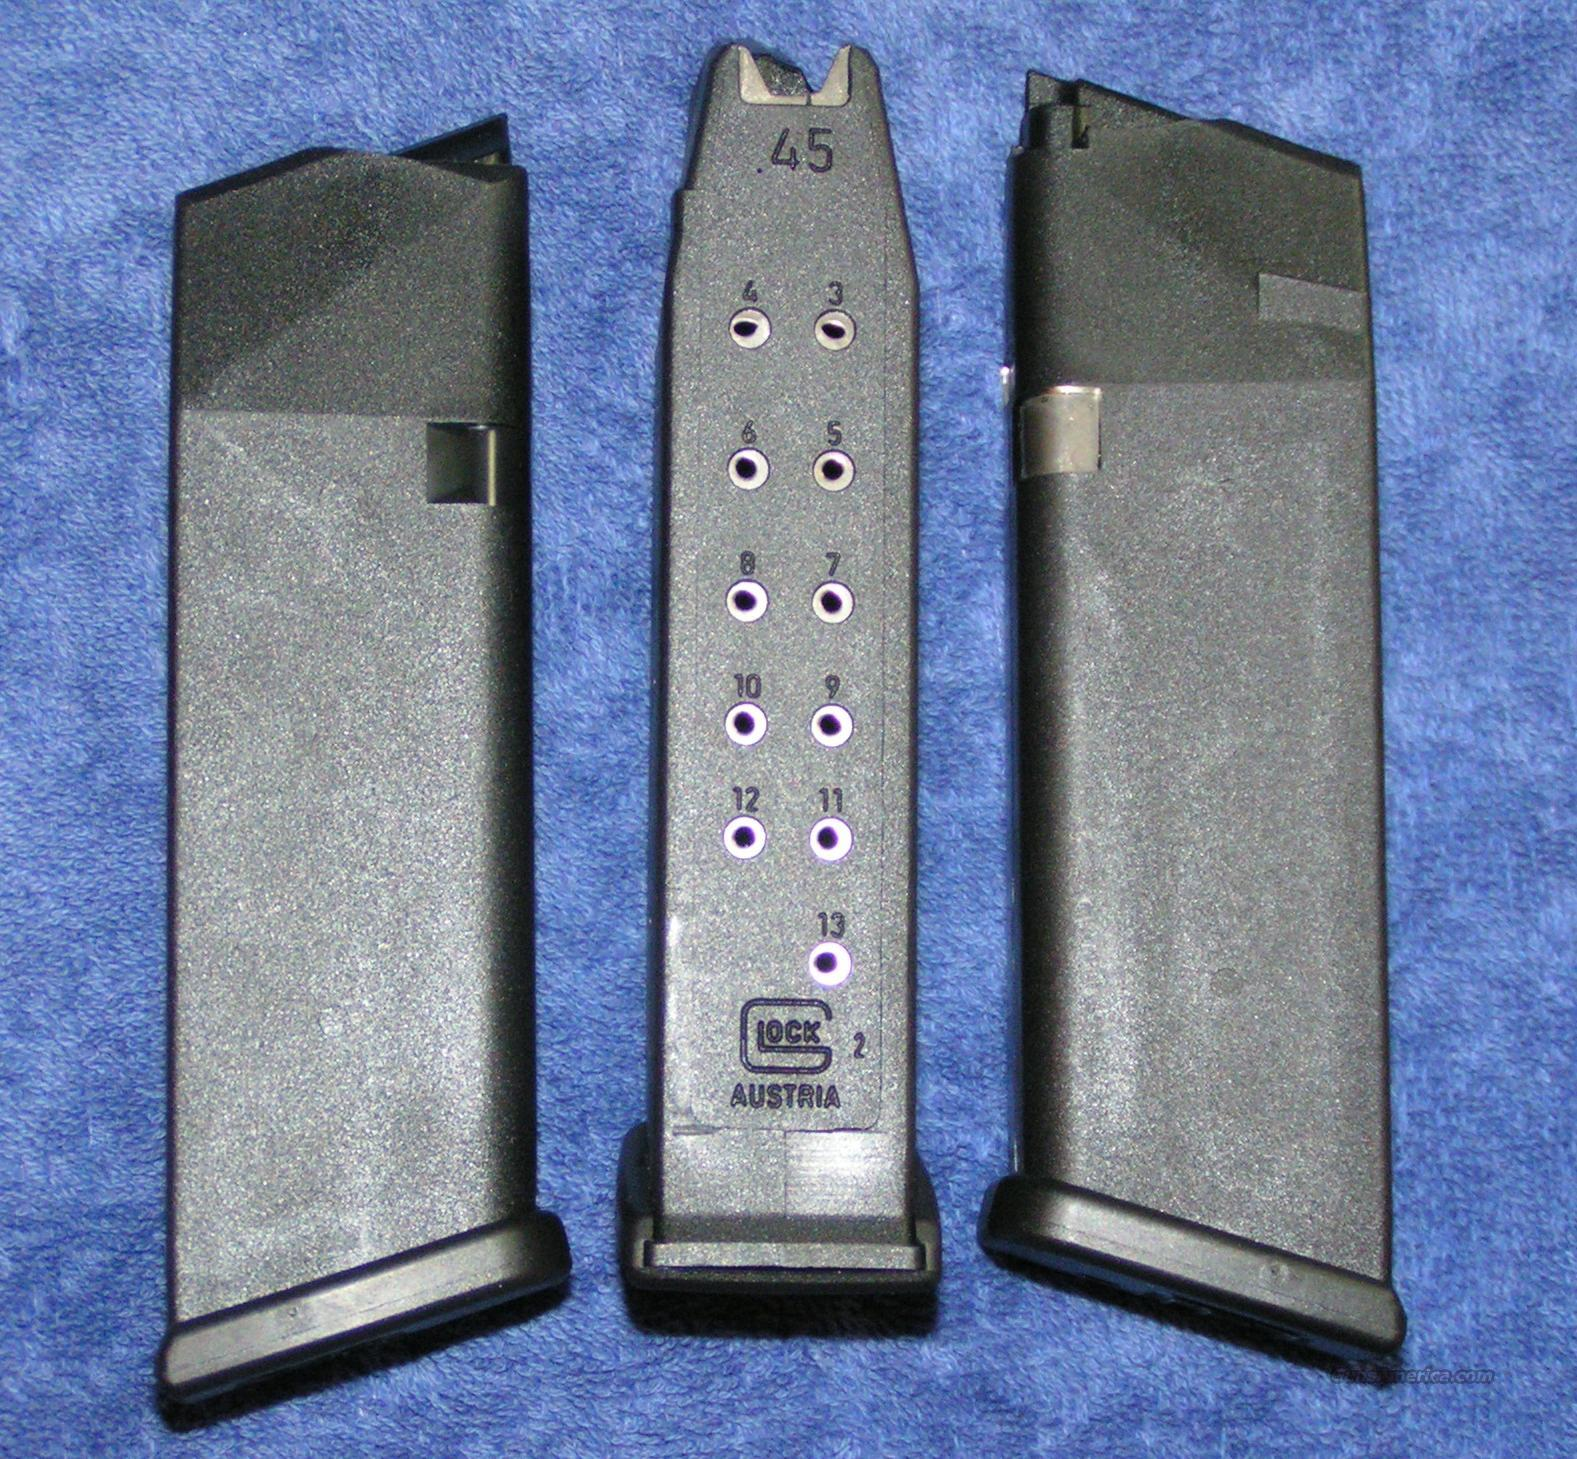 3 Glock 21 mags. New factory 45ACP 13 round Gen 4 $25 ea  Non-Guns > Magazines & Clips > Pistol Magazines > Glock